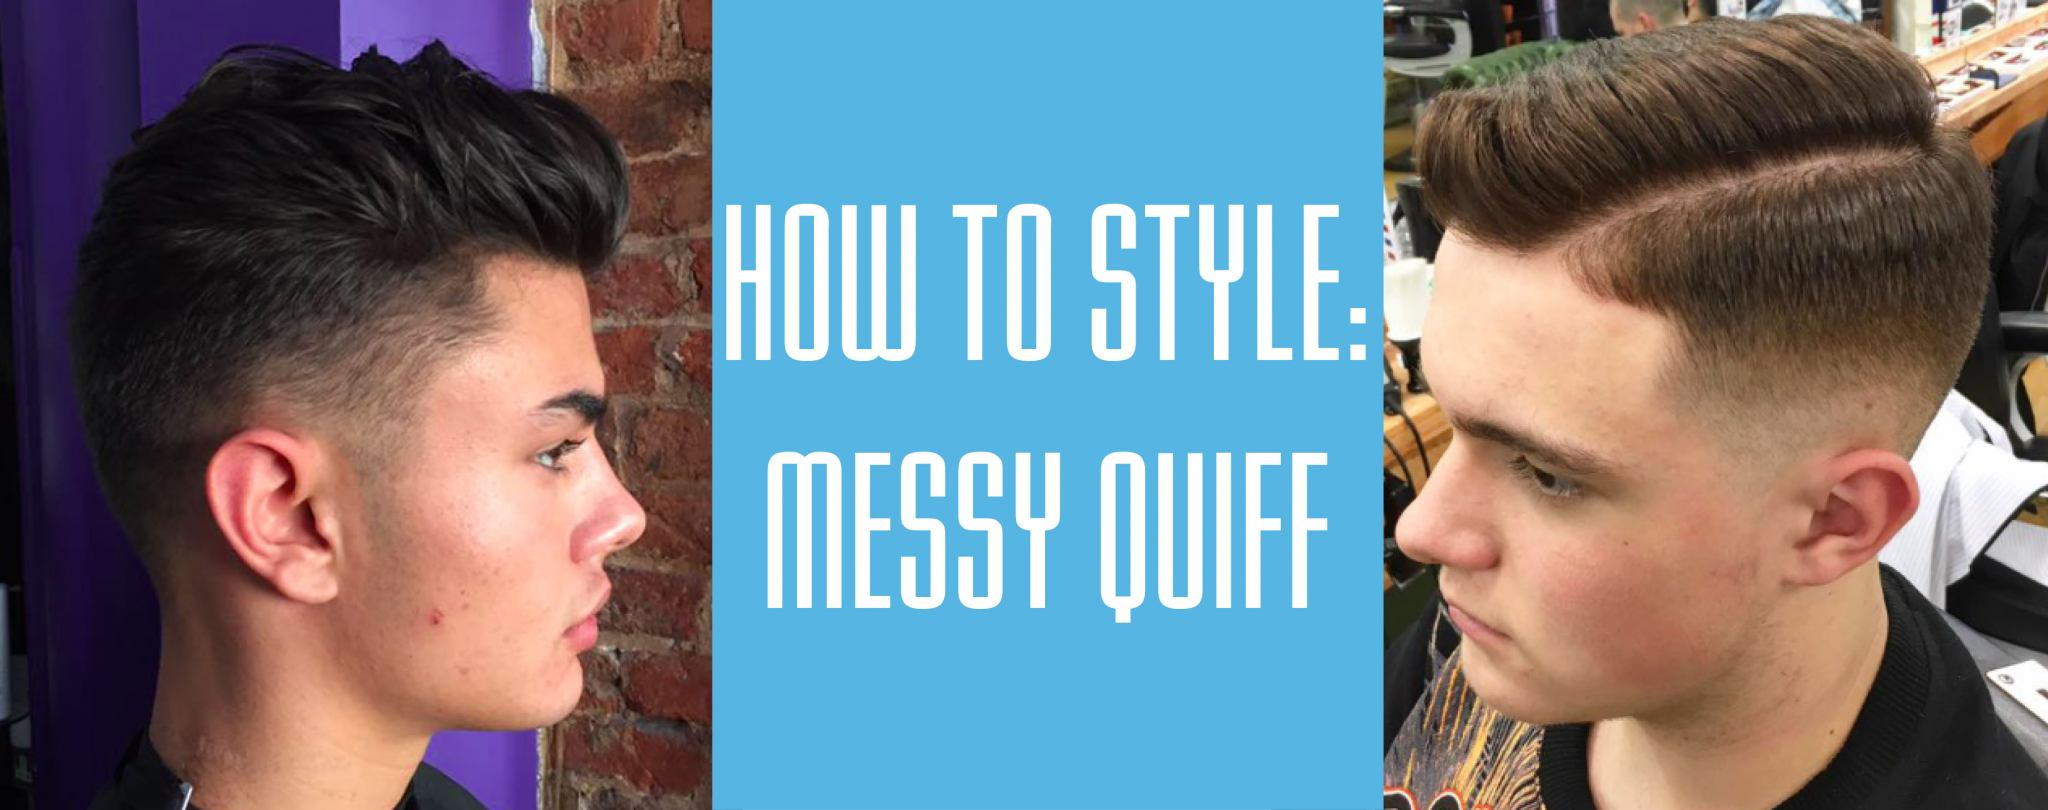 HOW TO STYLE SHORT HAIR: MEN'S MESSY QUIFF HAIRSTYLE TUTORIAL